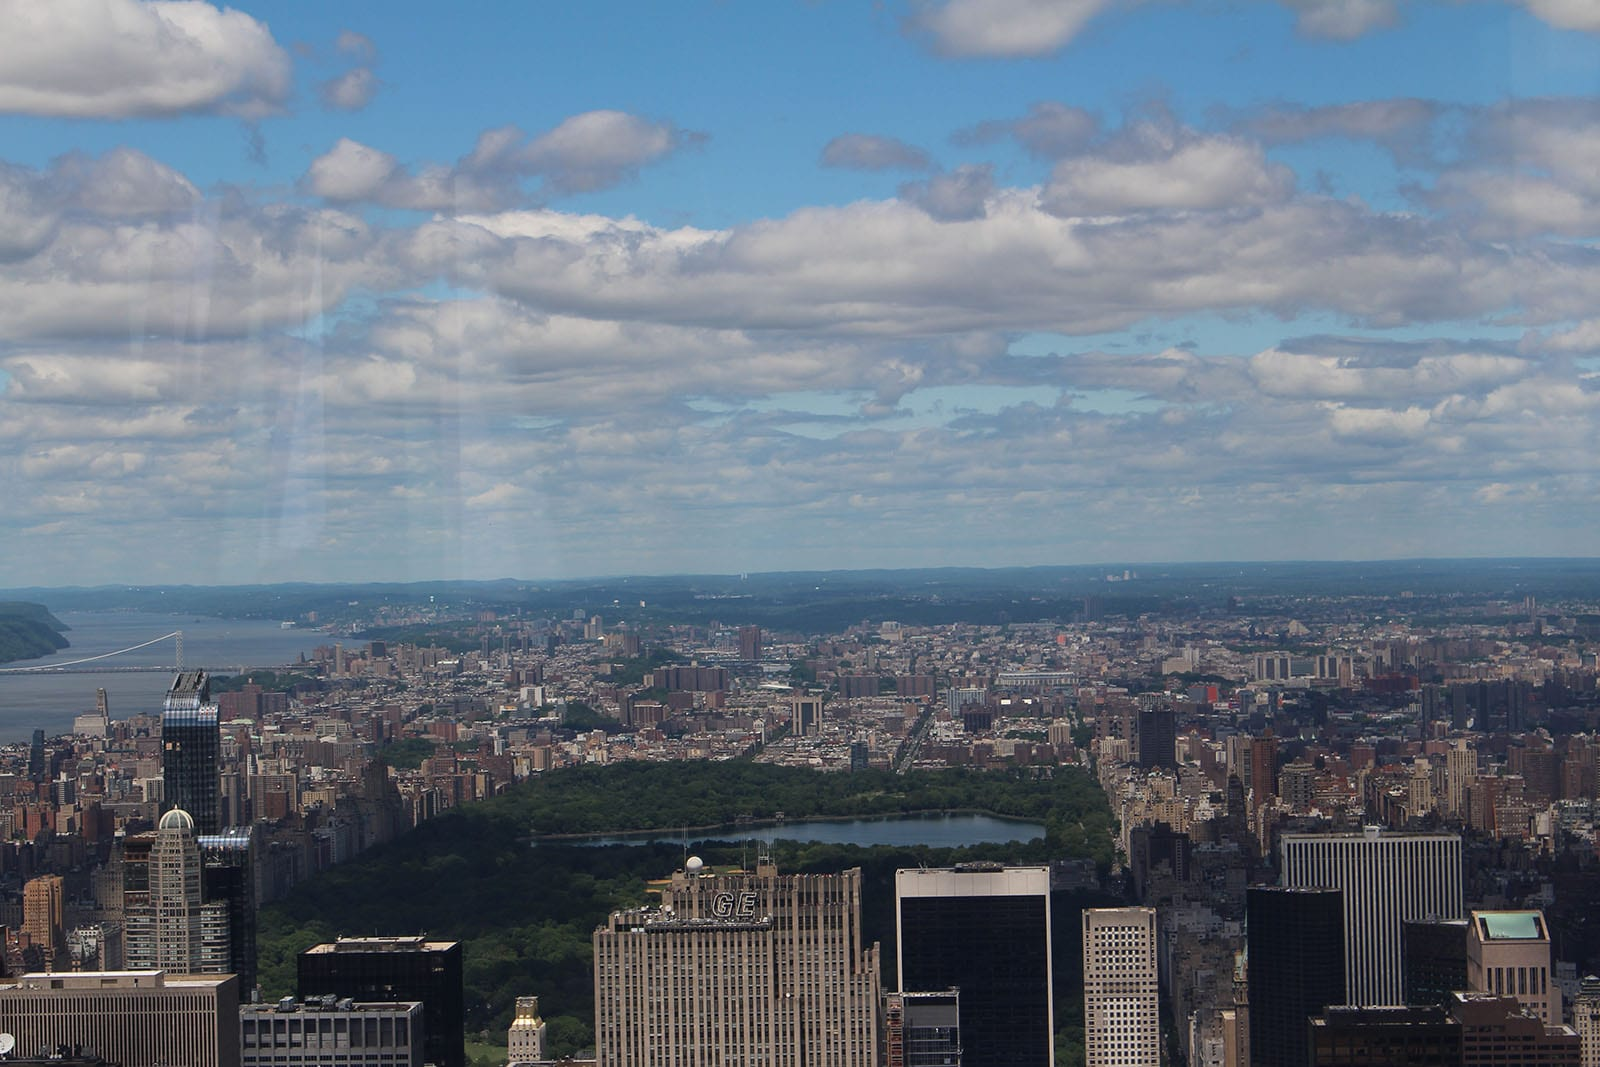 Empire State Building Level 102 pic 3